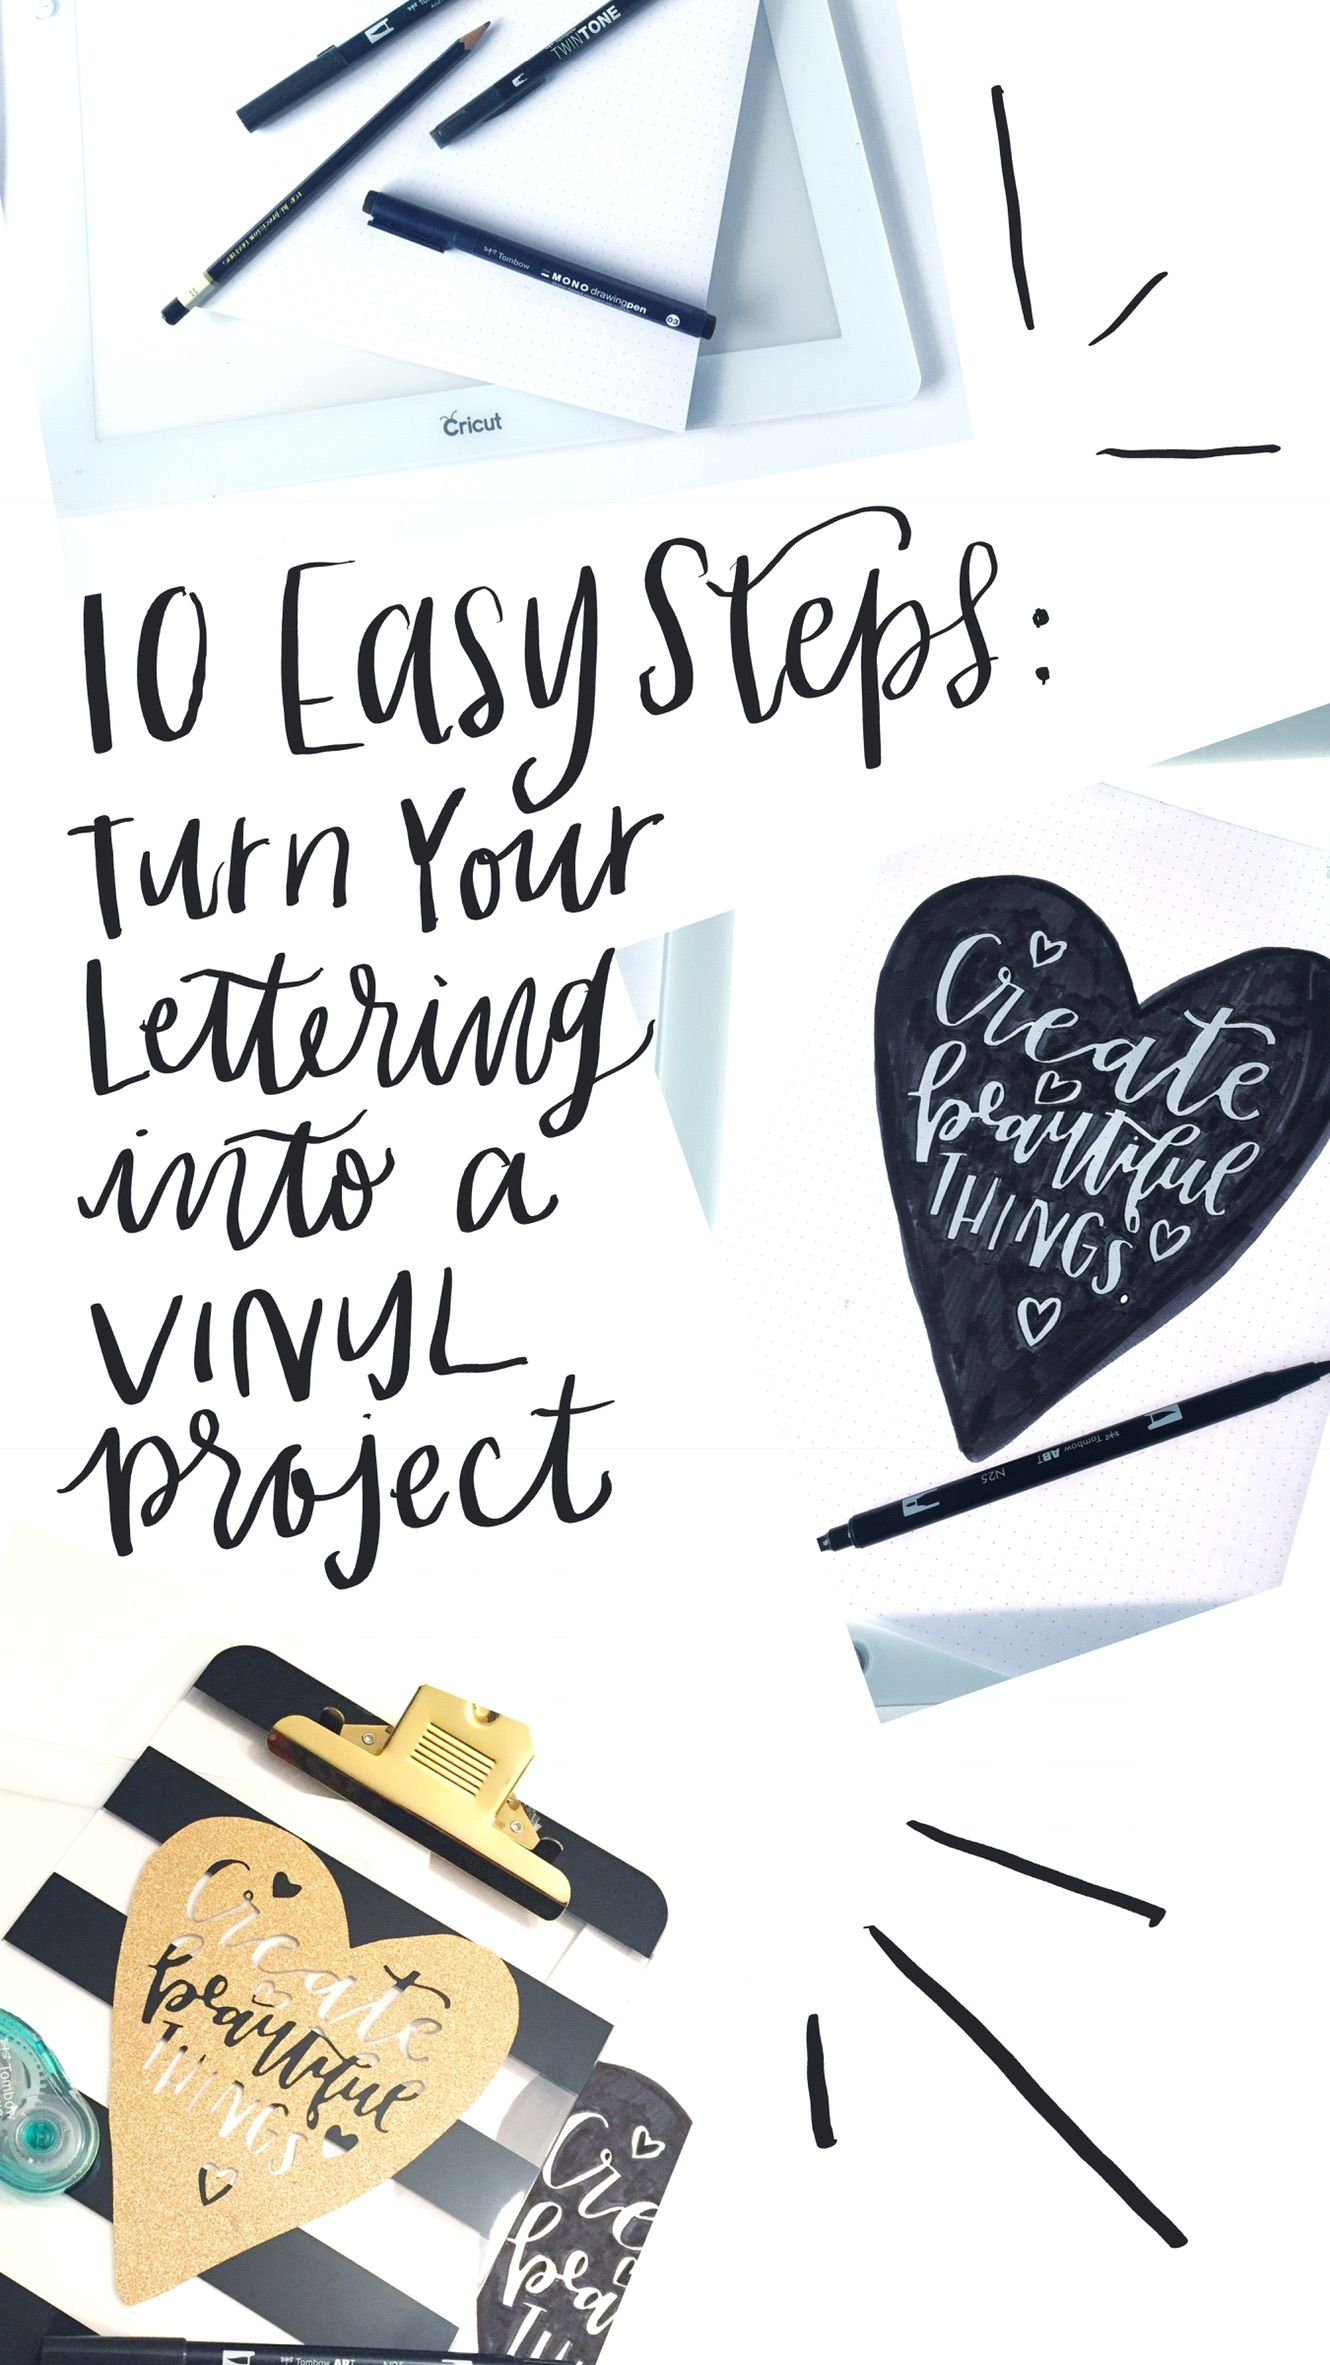 10 Easy Steps Turn Your Lettering Into A Vinyl Project Vinyl Projects Lettering Projects